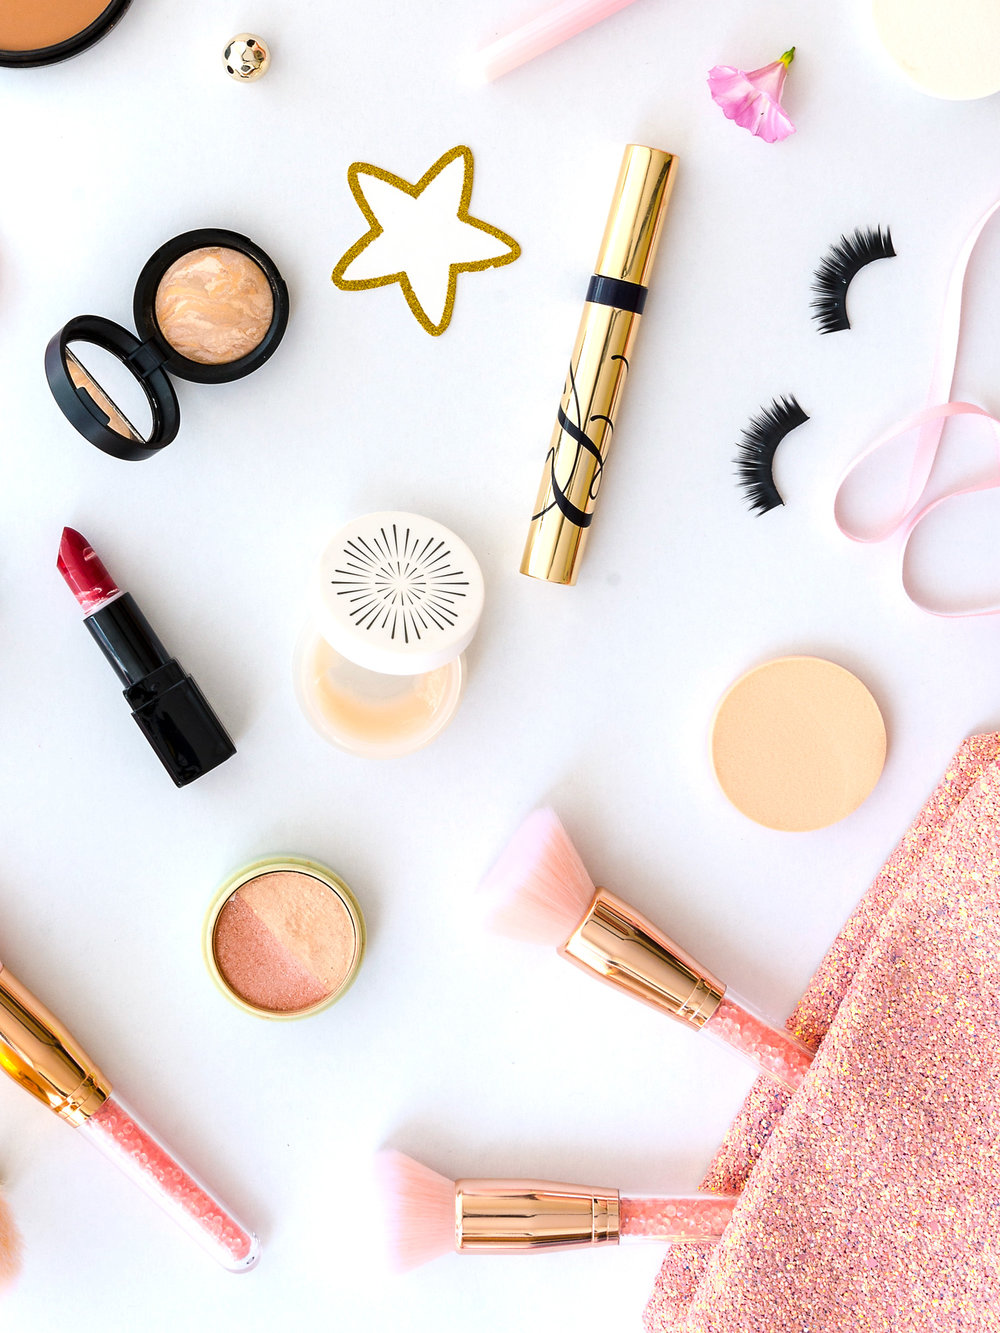 Top 10 Beauty Blog Posts of 2018